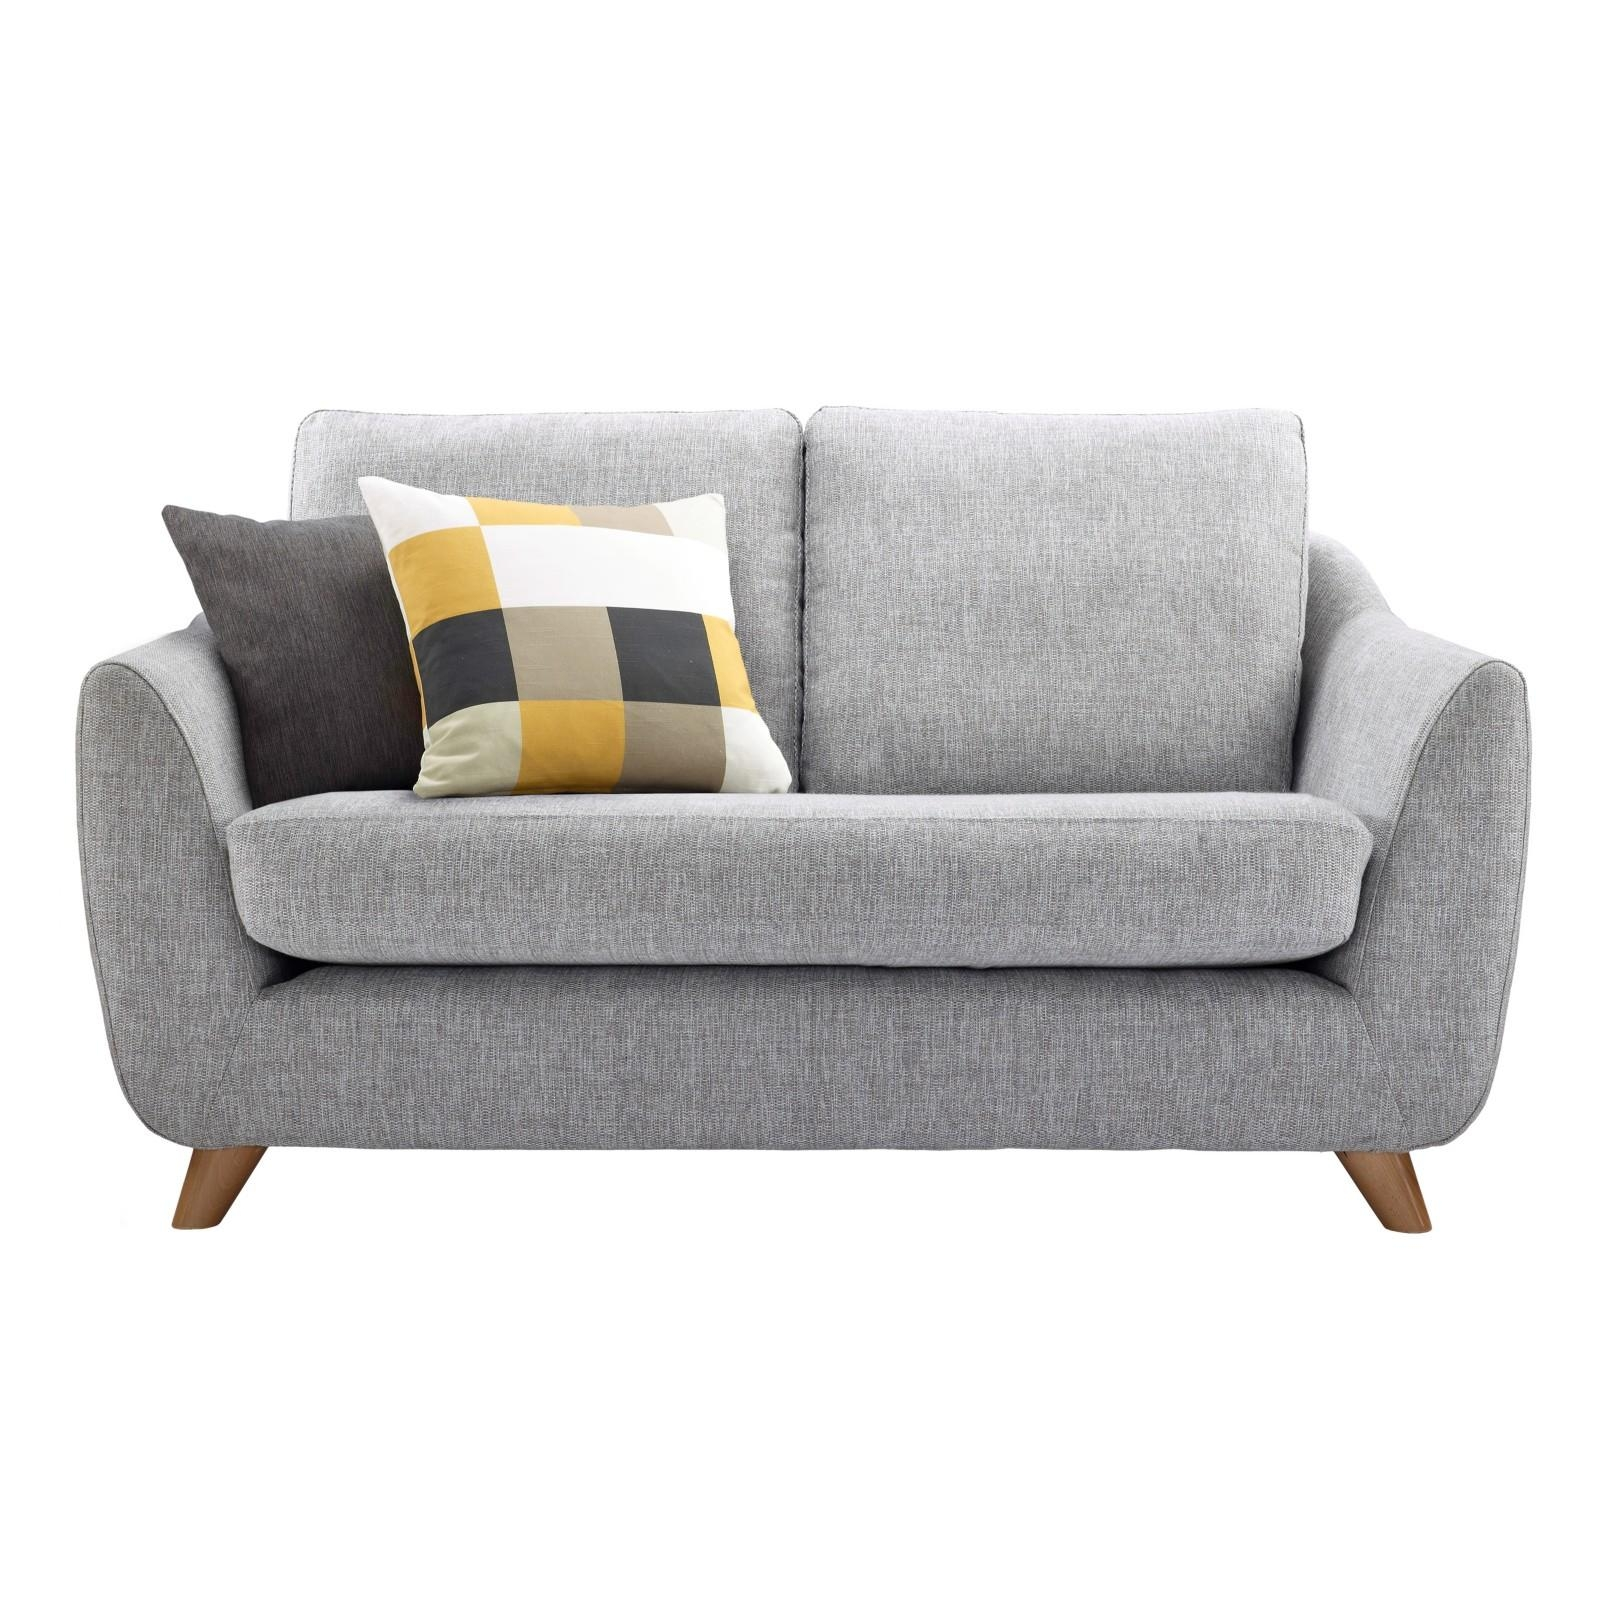 Double Sofa Beds Uk | Tehranmix Decoration Within Cheap Sofa Beds (Image 5 of 20)